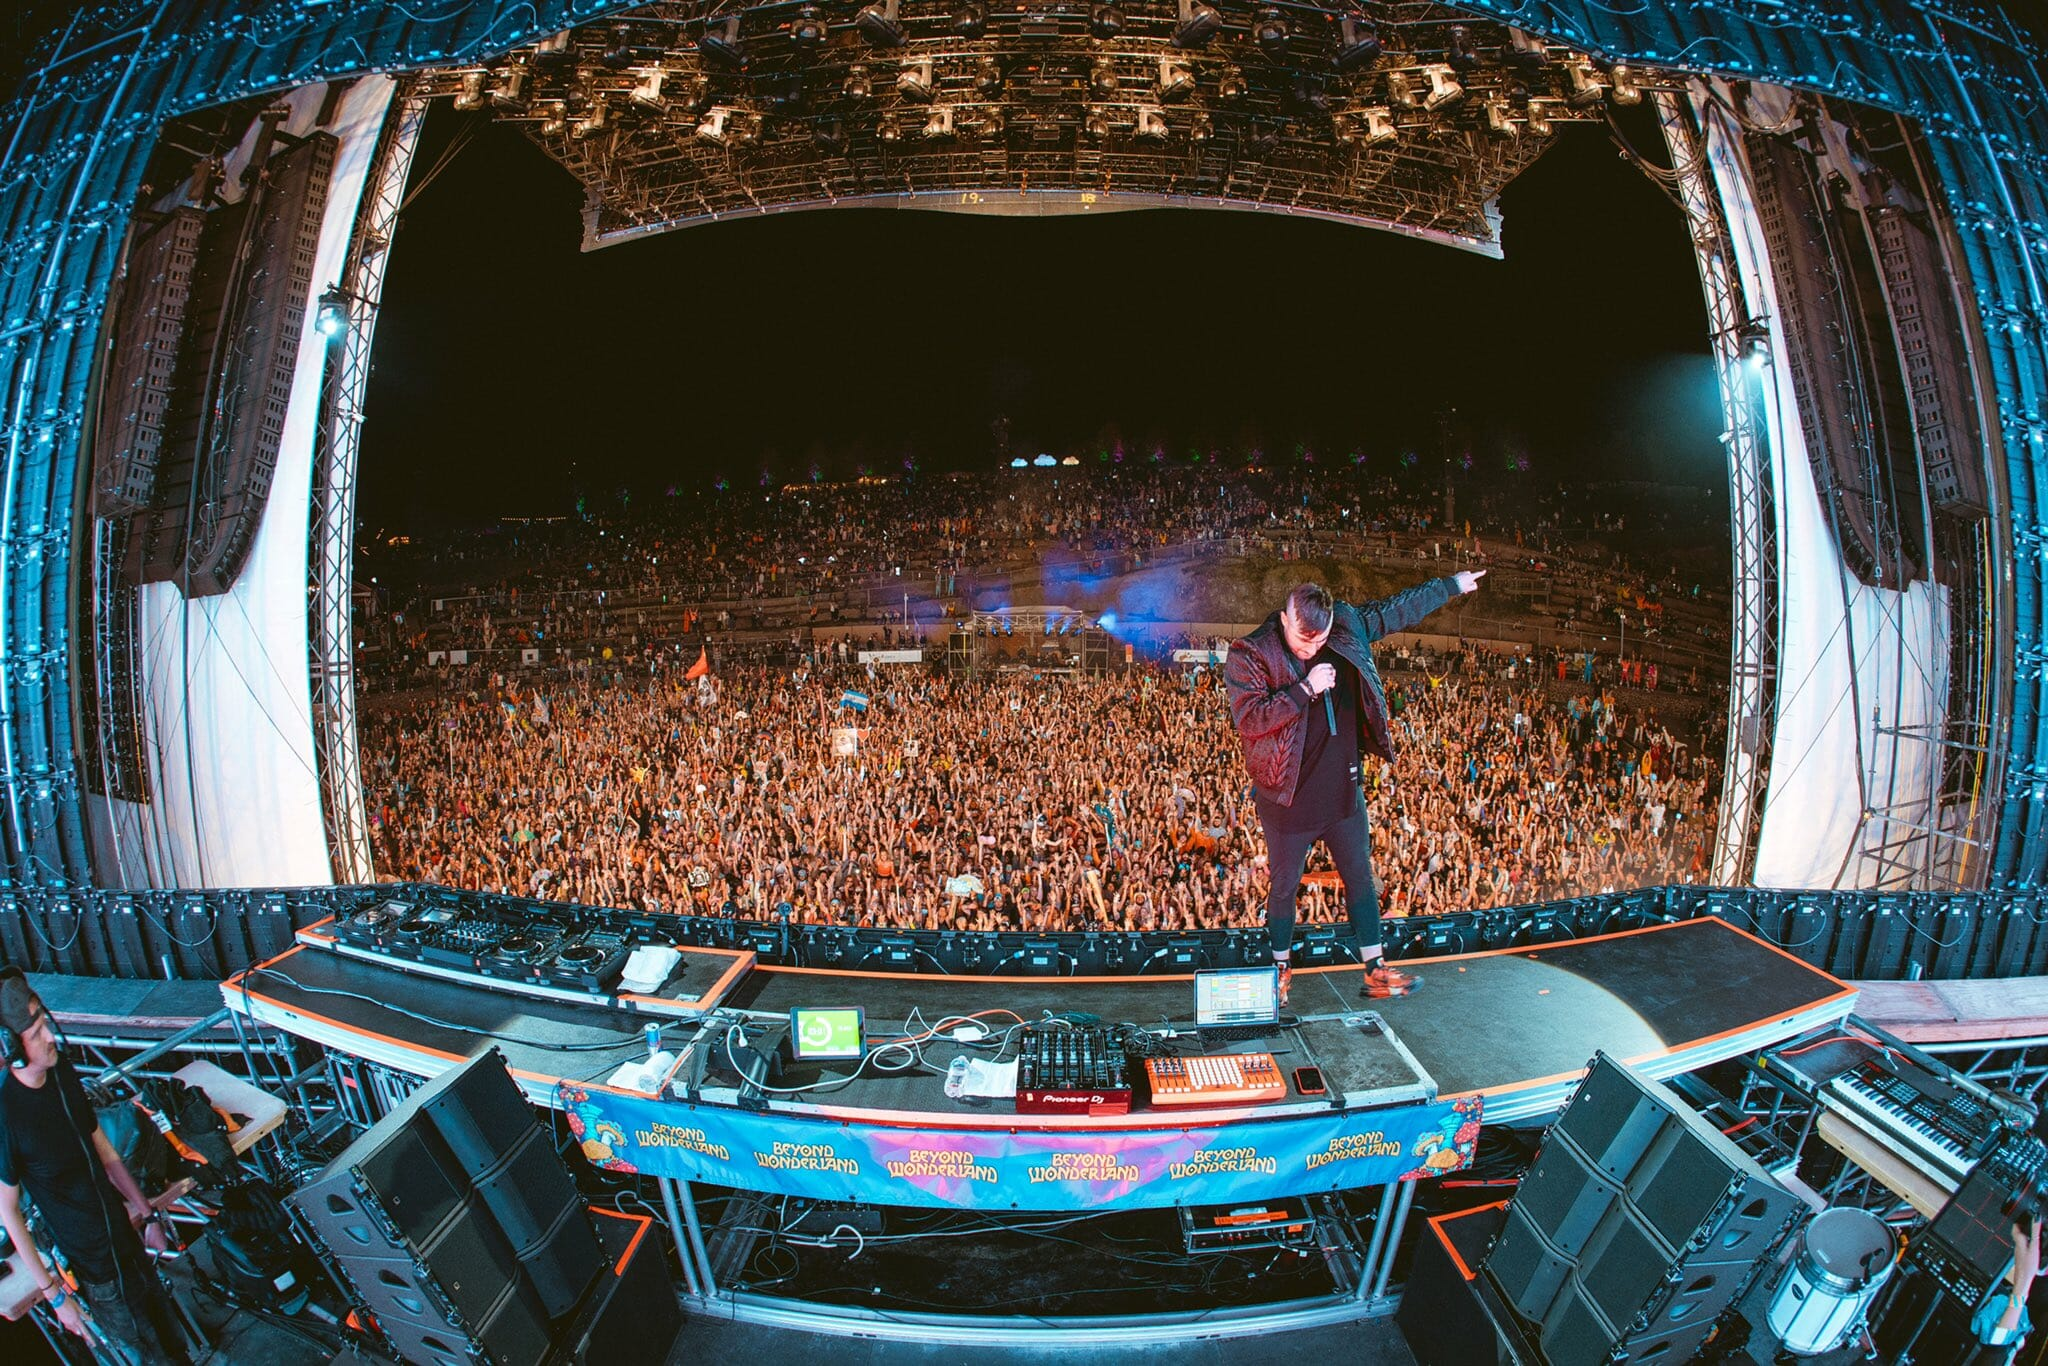 3LAU releases world's first fan-owned song, 'Worst Case' with CXLOEFAuwYmeVQAEYE9E